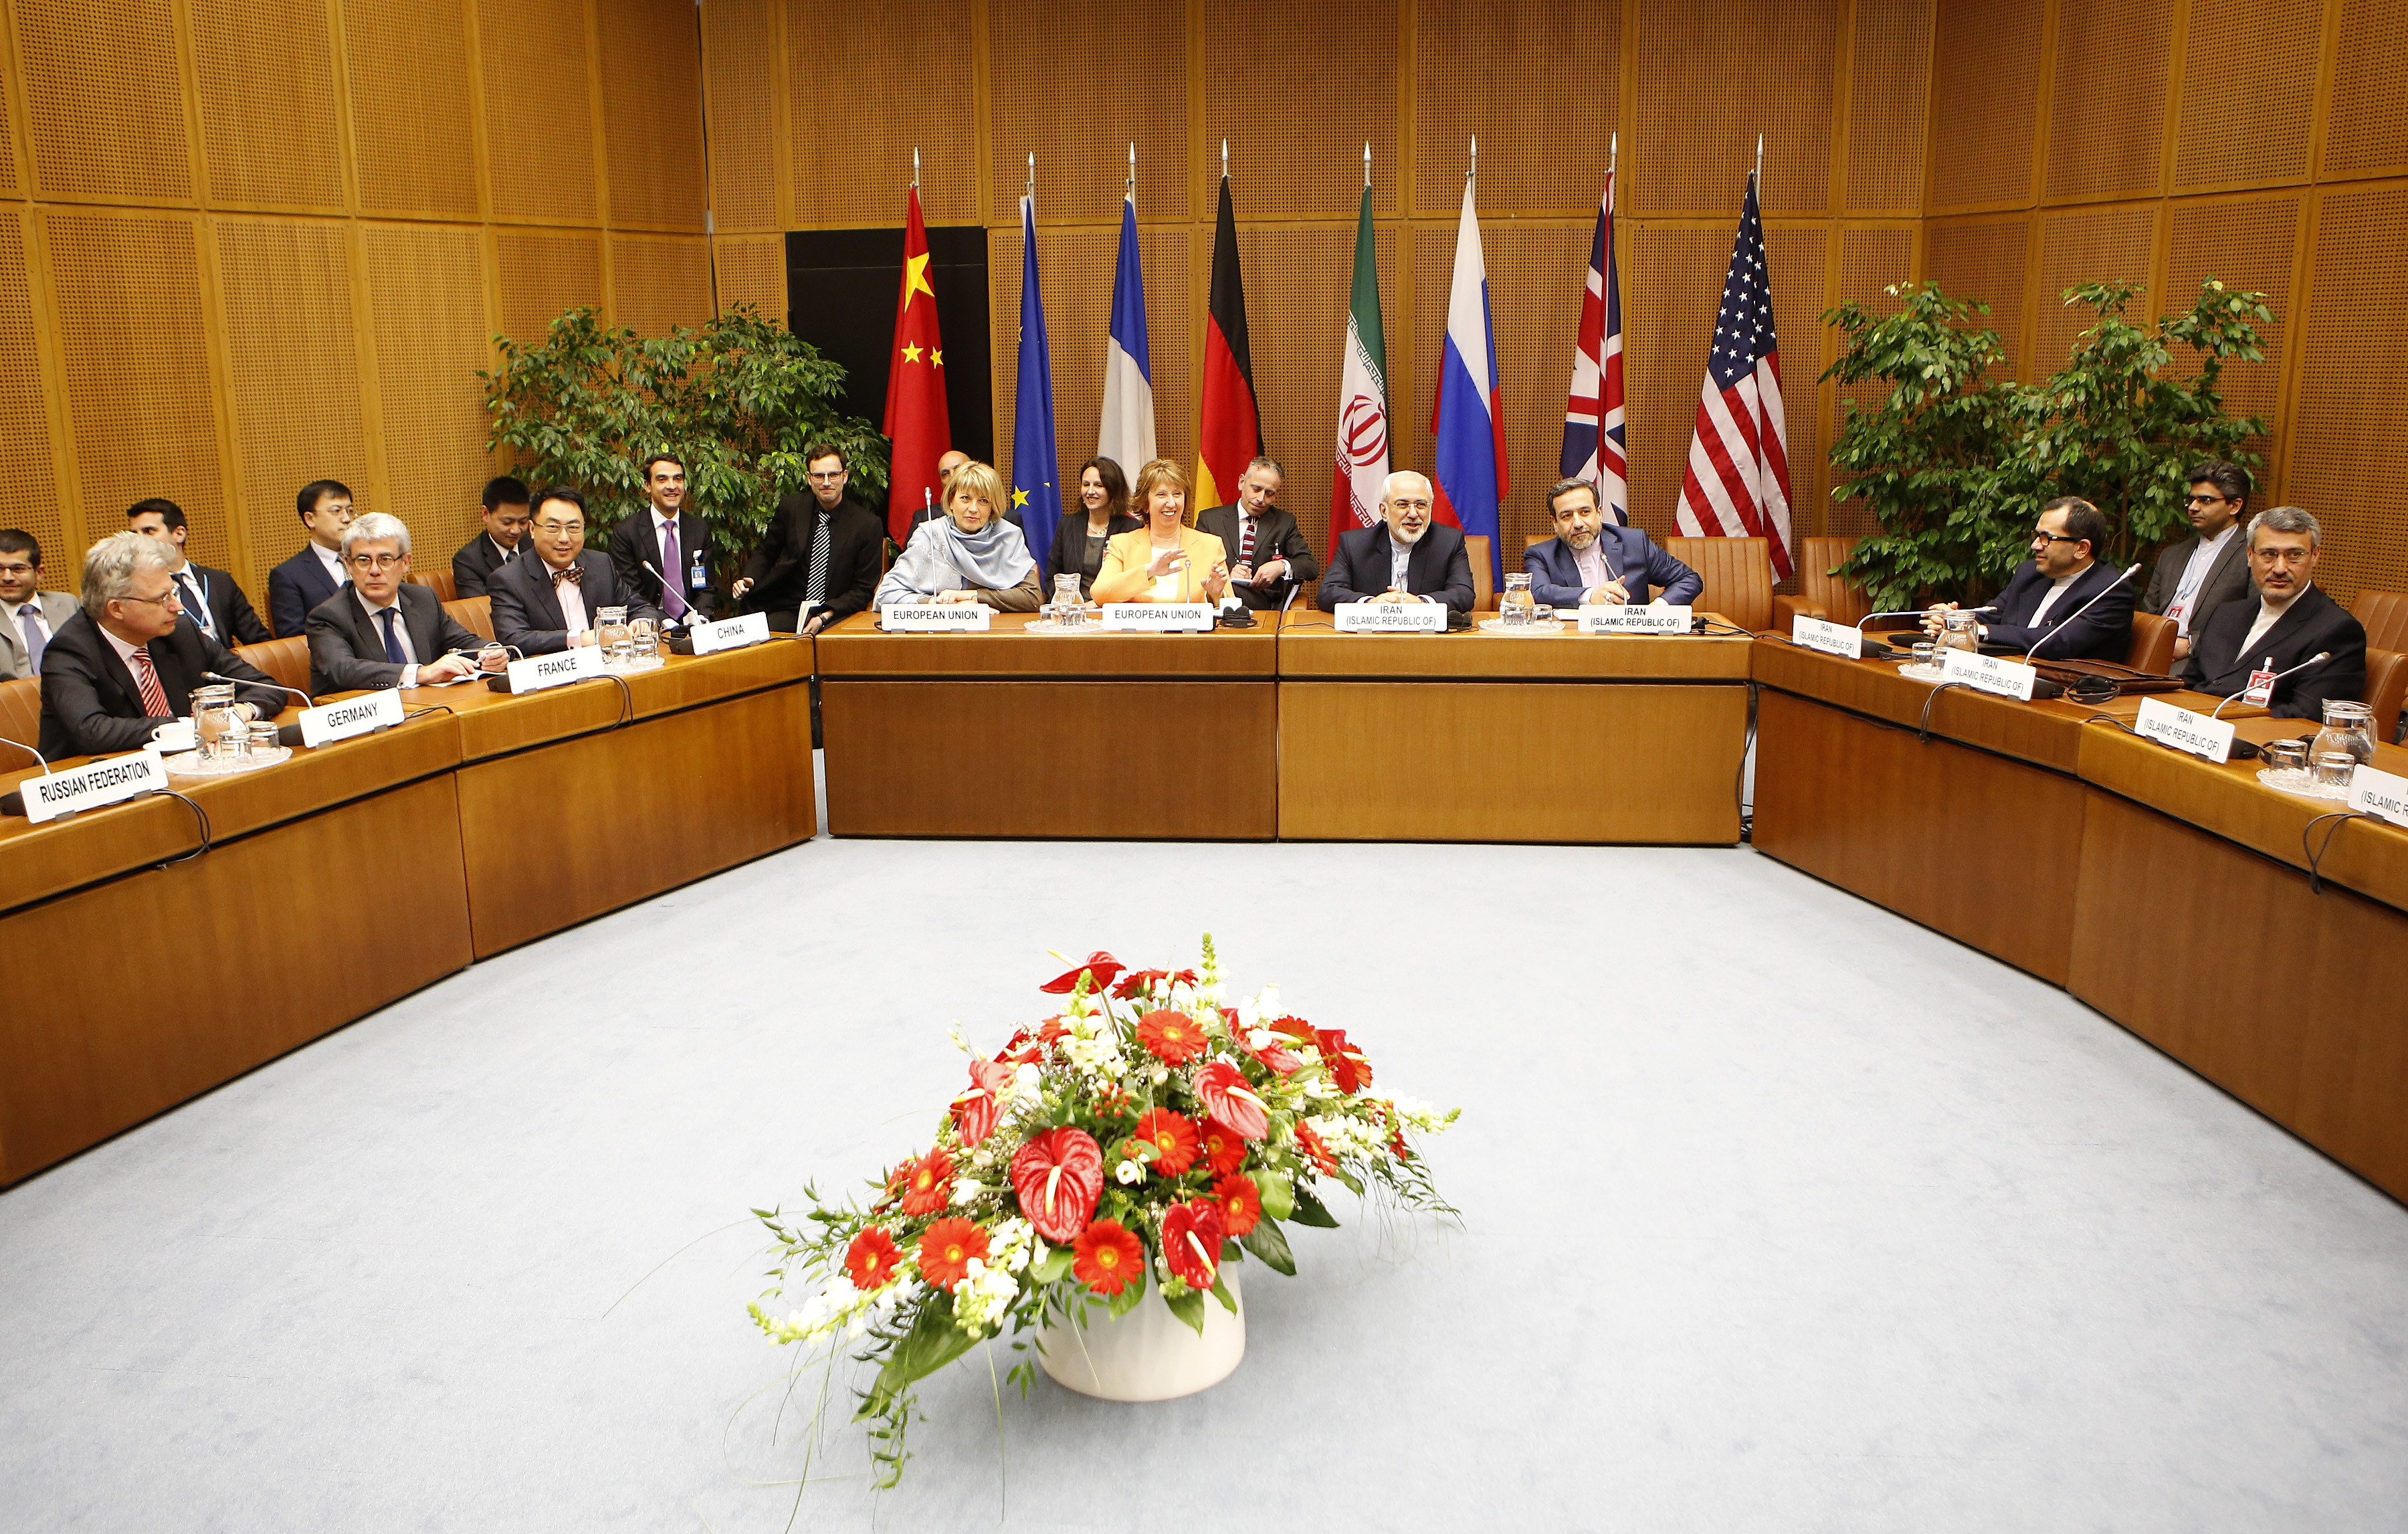 E.U. foreign-affairs representative Catherine Ashton, center left, and Iranian Foreign Minister Mohammad Javad Zarif, center right, attend the second day of the second round of nuclear talks with Iran at the U.N. headquarters in Vienna on March 19, 2014